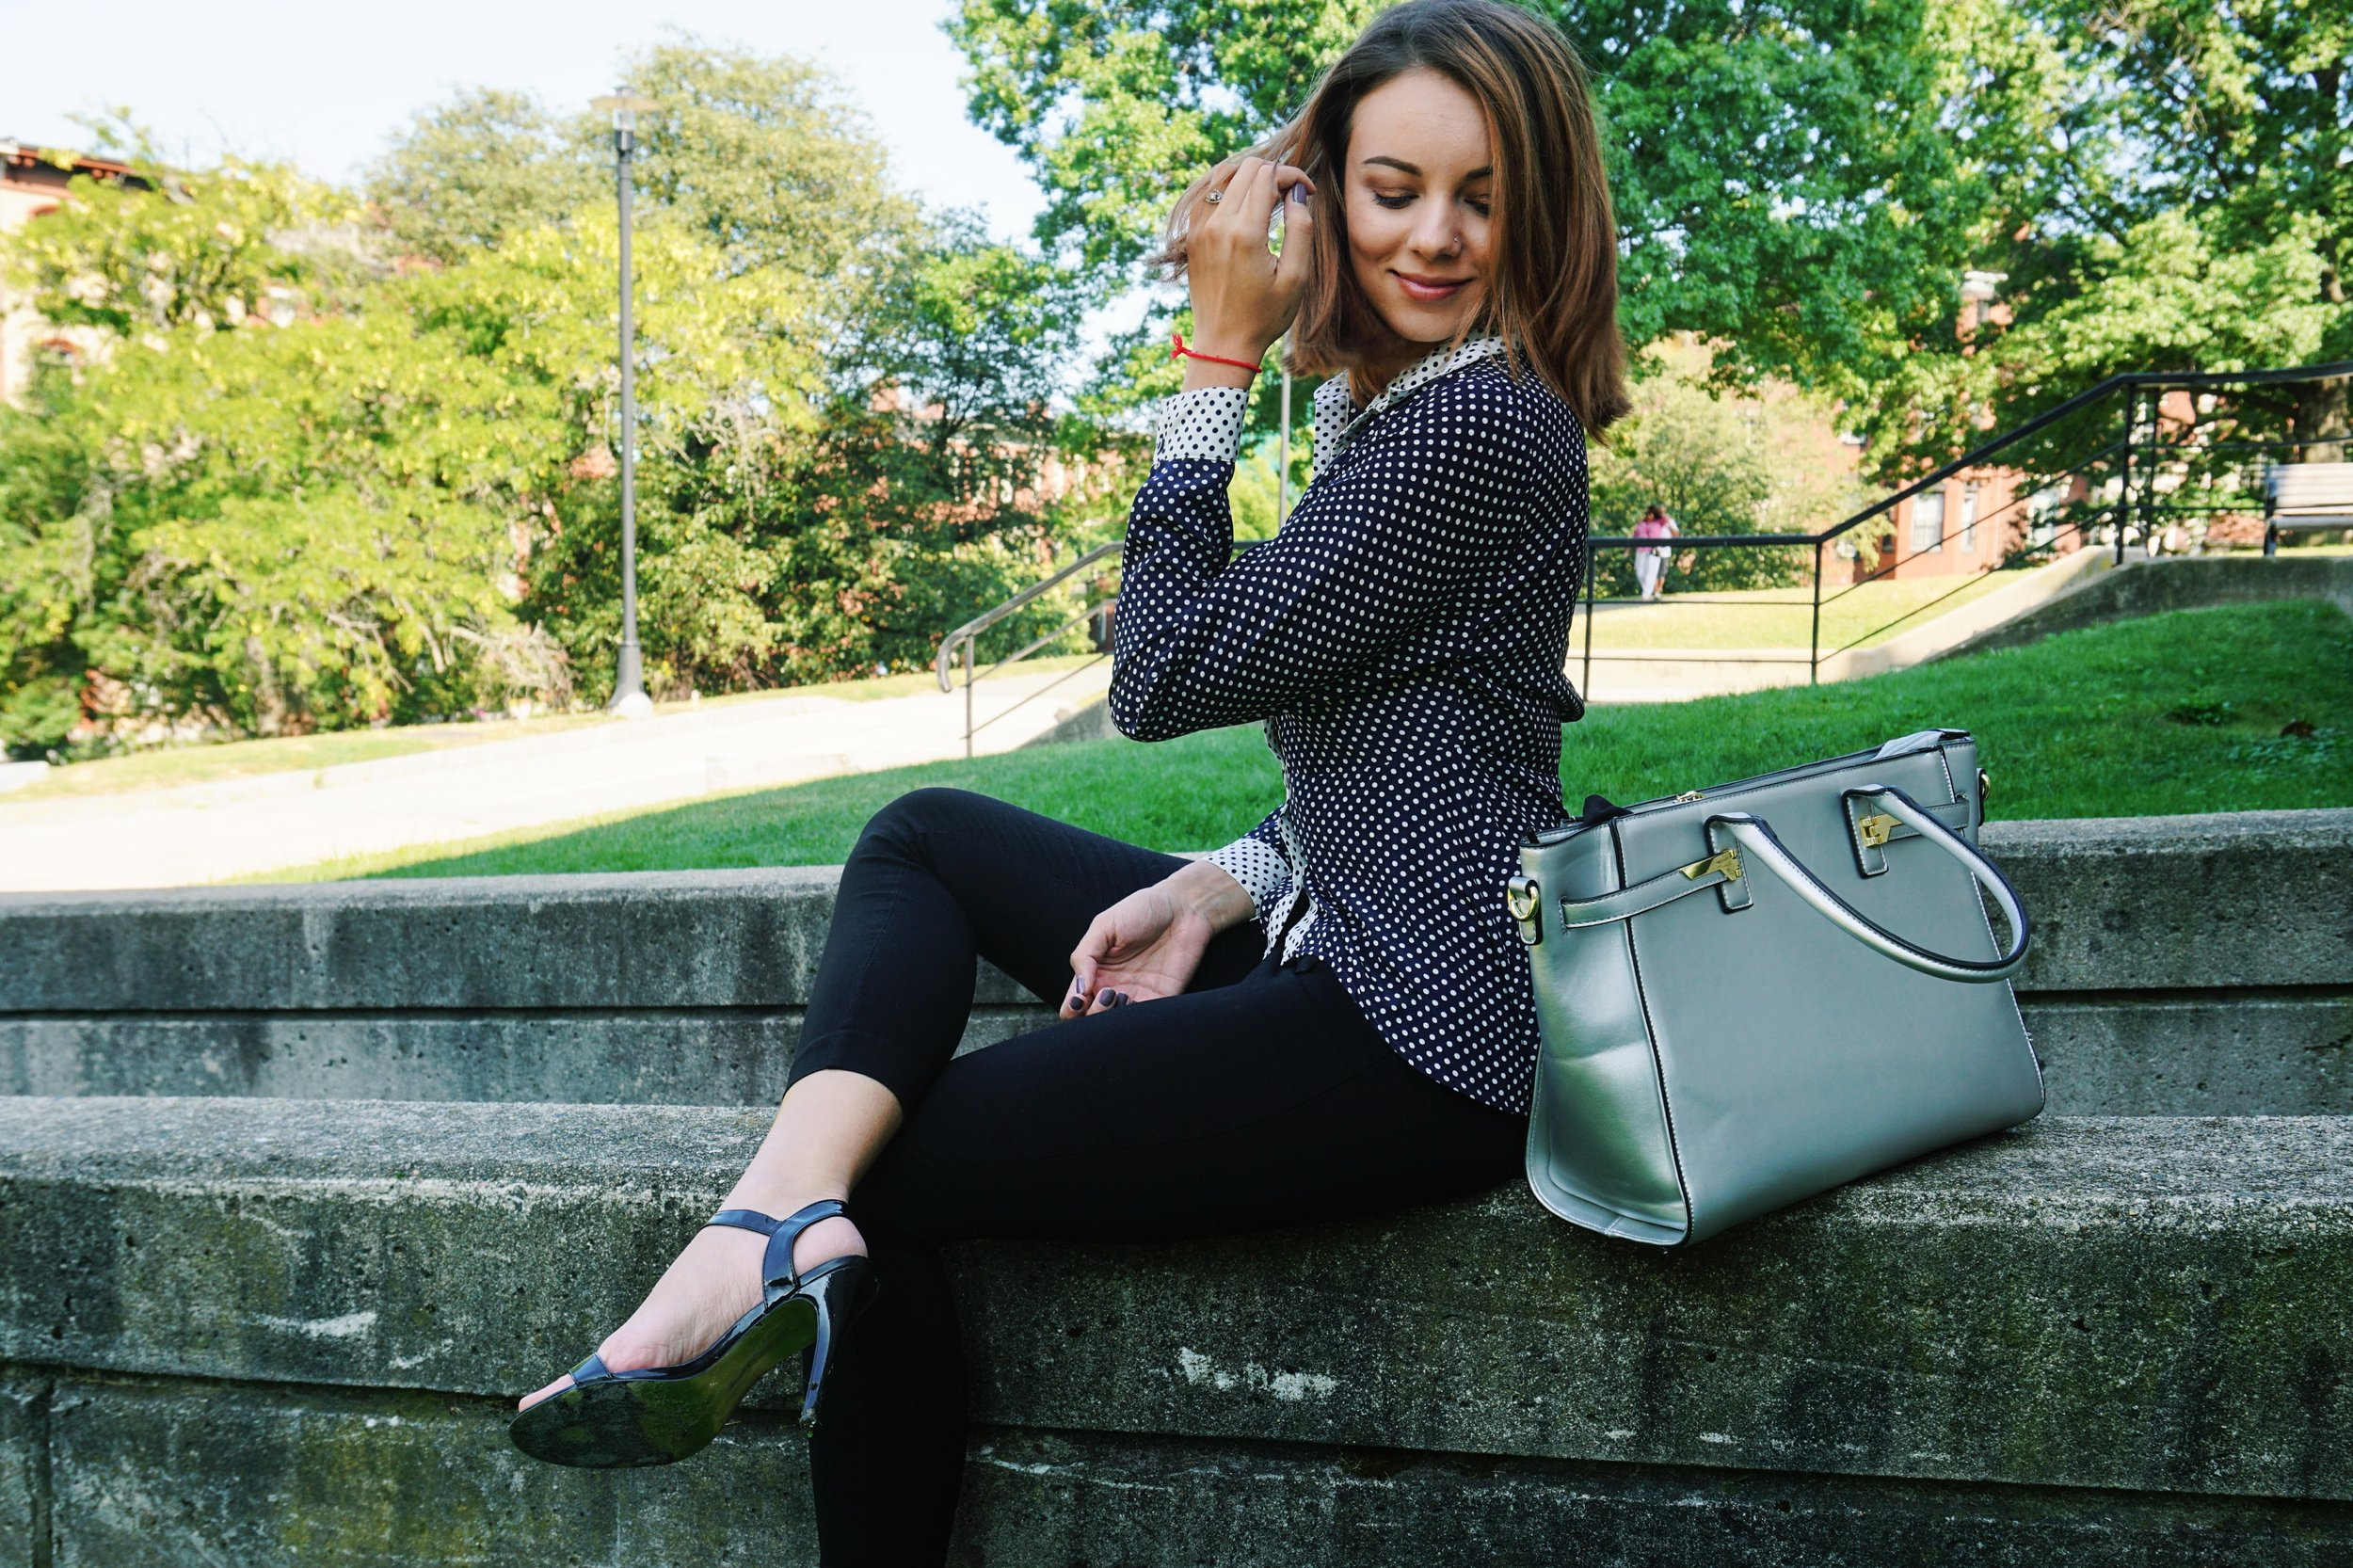 A blogger sitting in the park, wearing a polka dot blouse, black capris, black high heel sandals, and a silver purse.